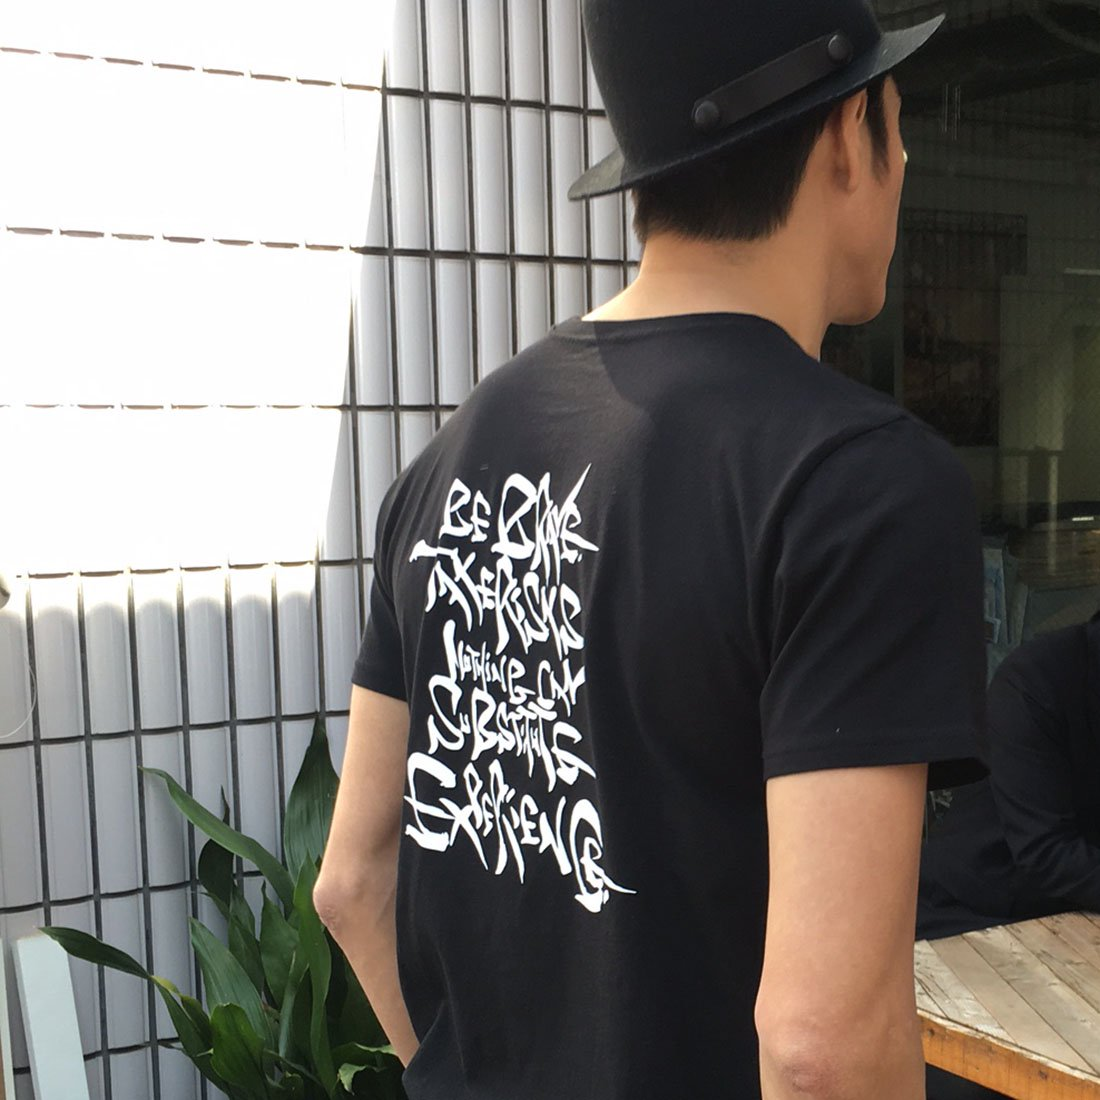 【REBIRTH PROJECT】「BE BRAVE...」Tシャツ by 伊勢谷友介